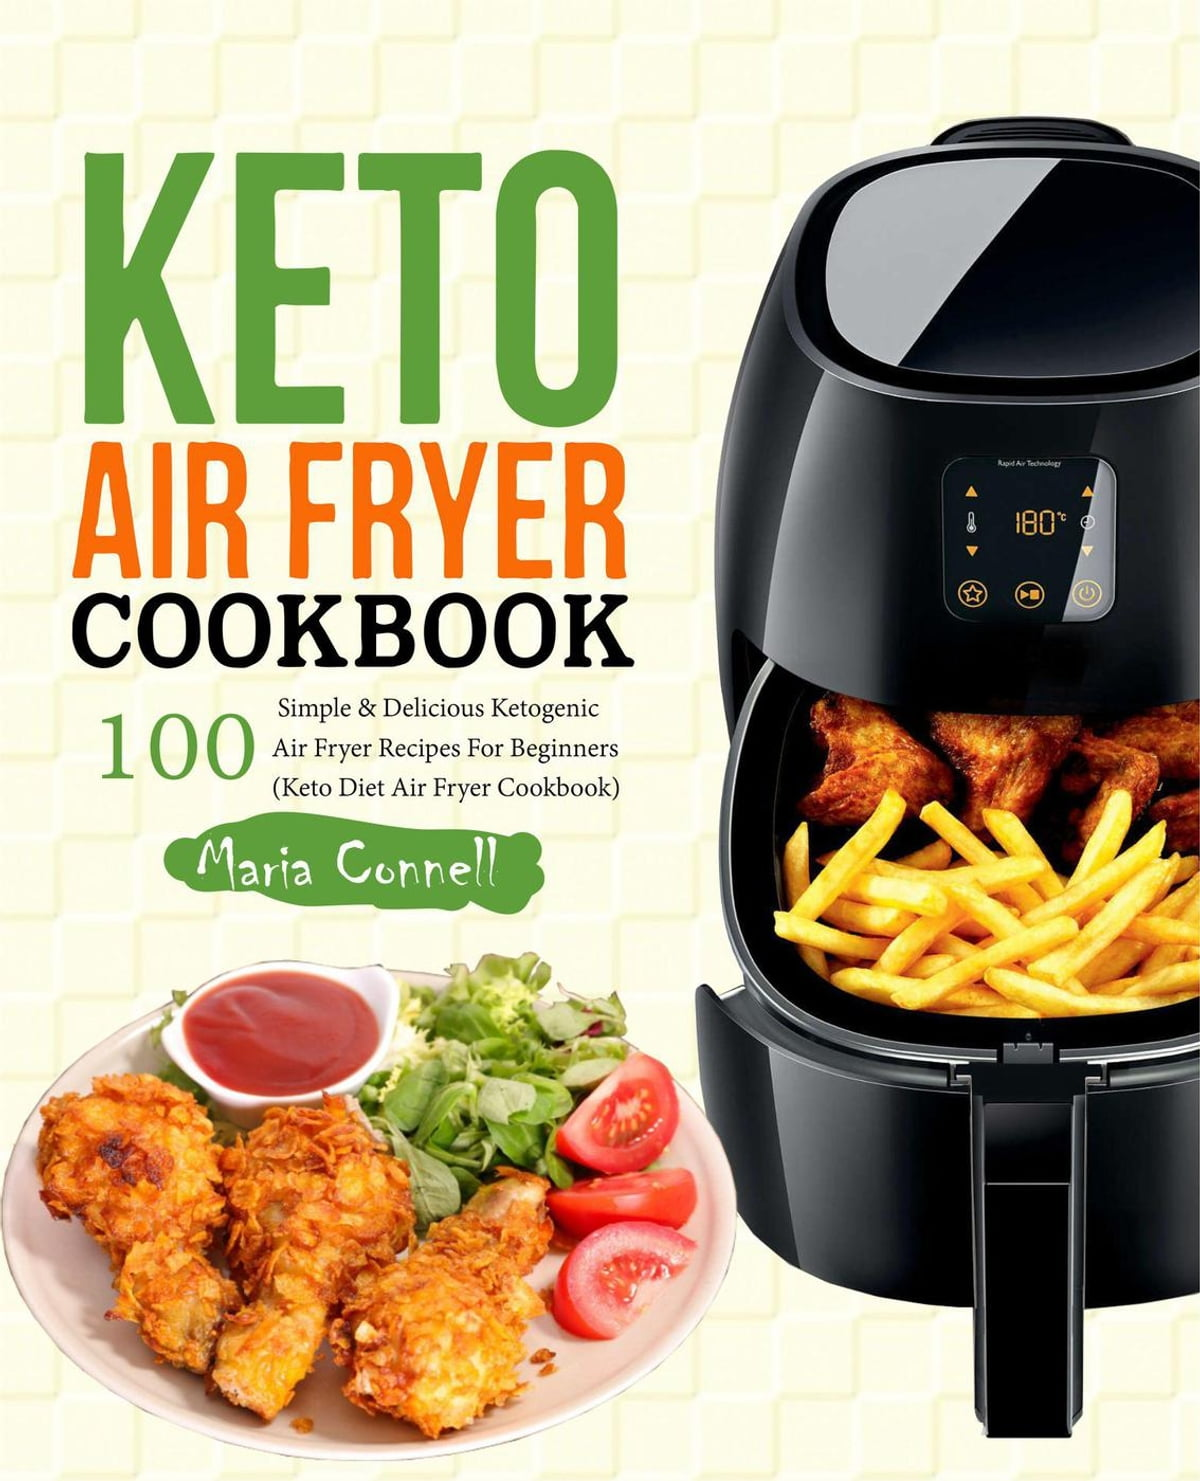 Keto Air Fryer Cookbook: 100 Simple & Delicious Ketogenic